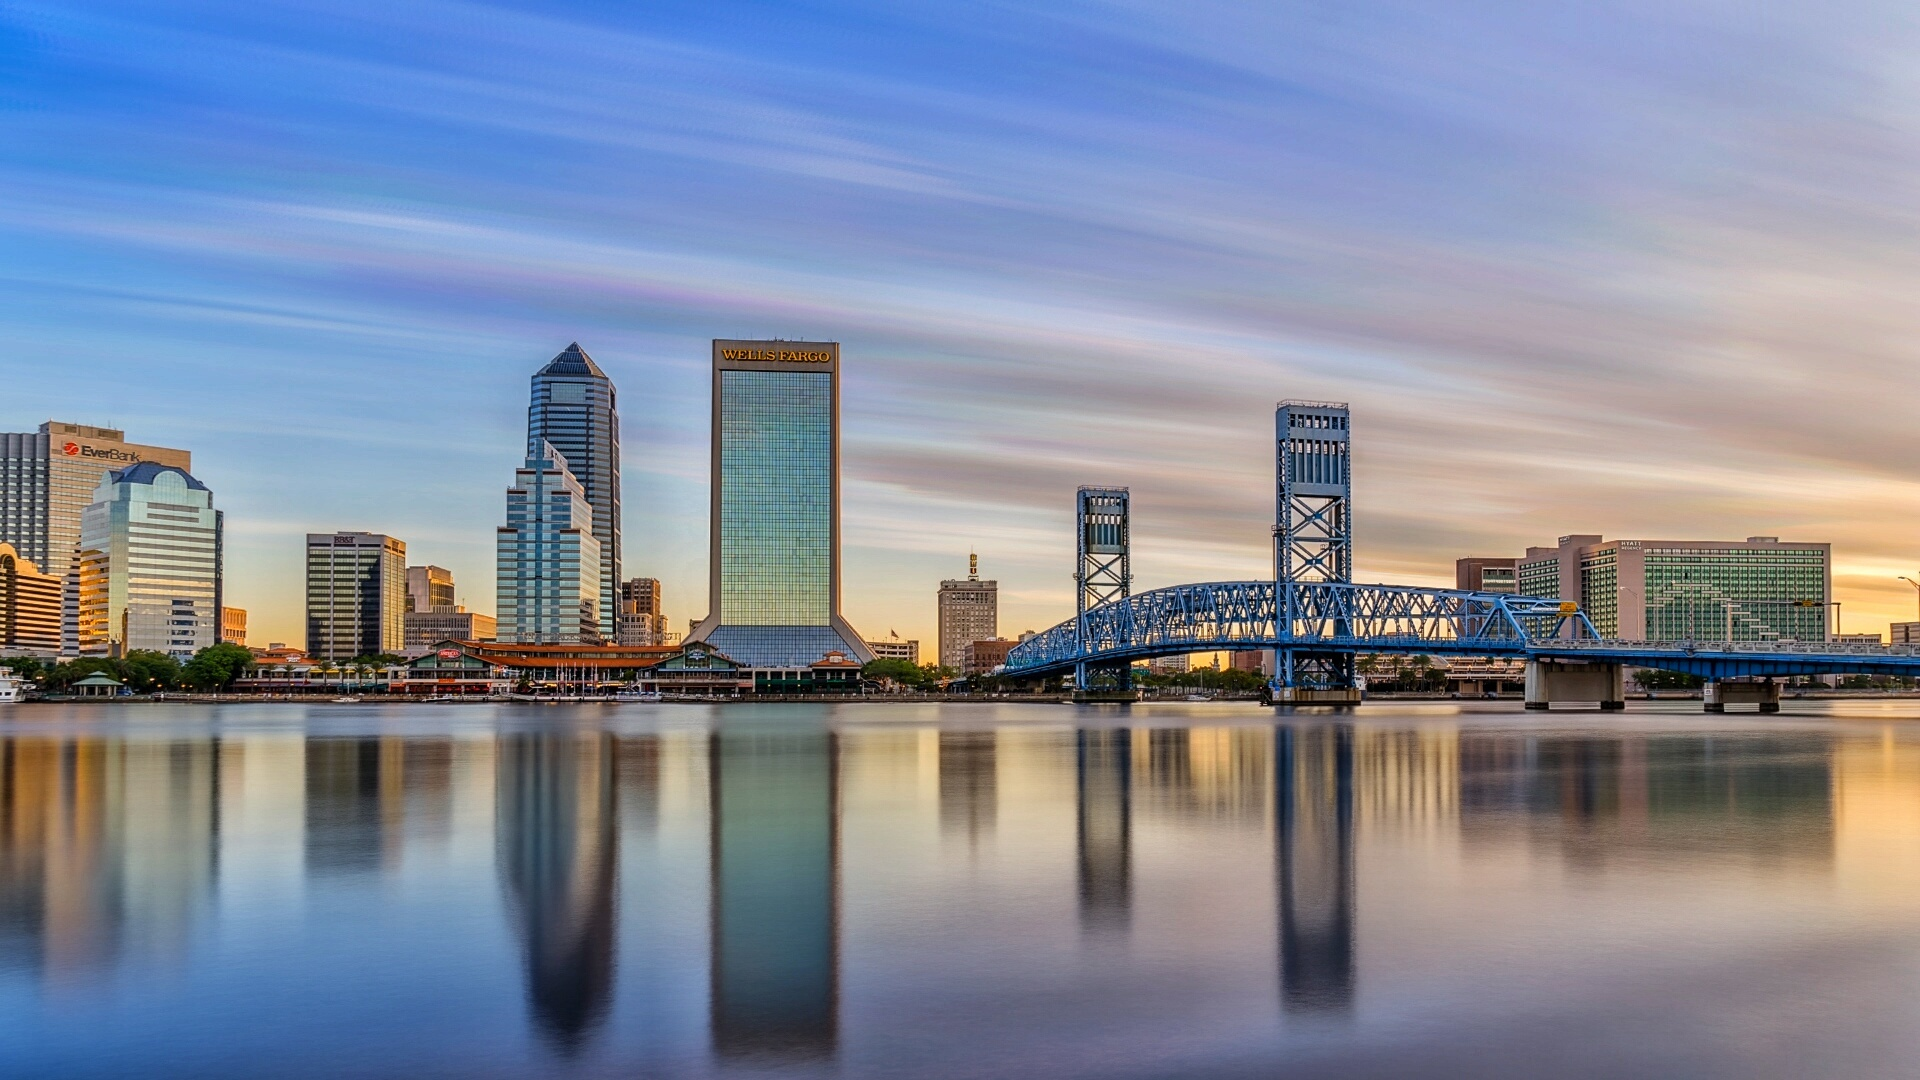 Jacksonville FL Skyline at Sunrise by Zygmunt Spray